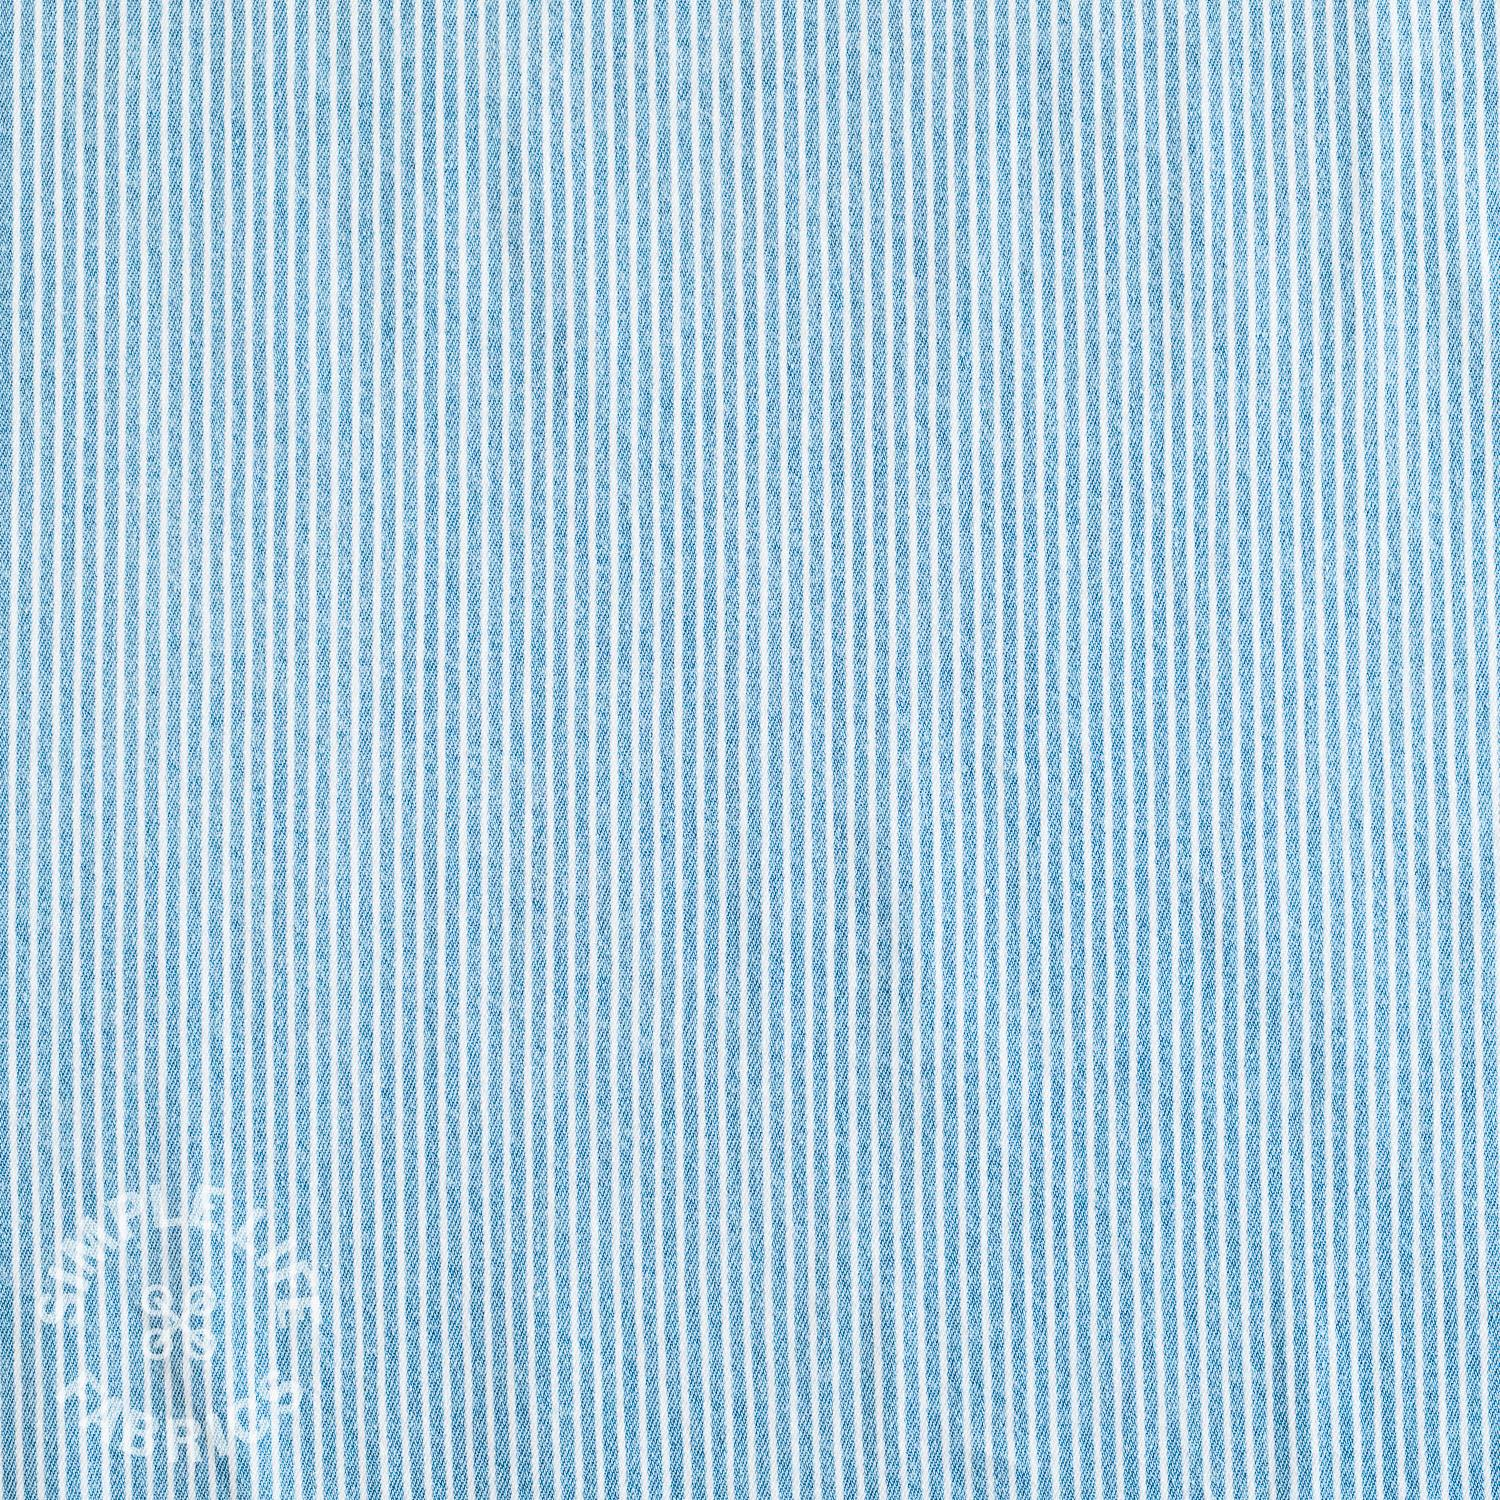 striped blue and white denim fabric